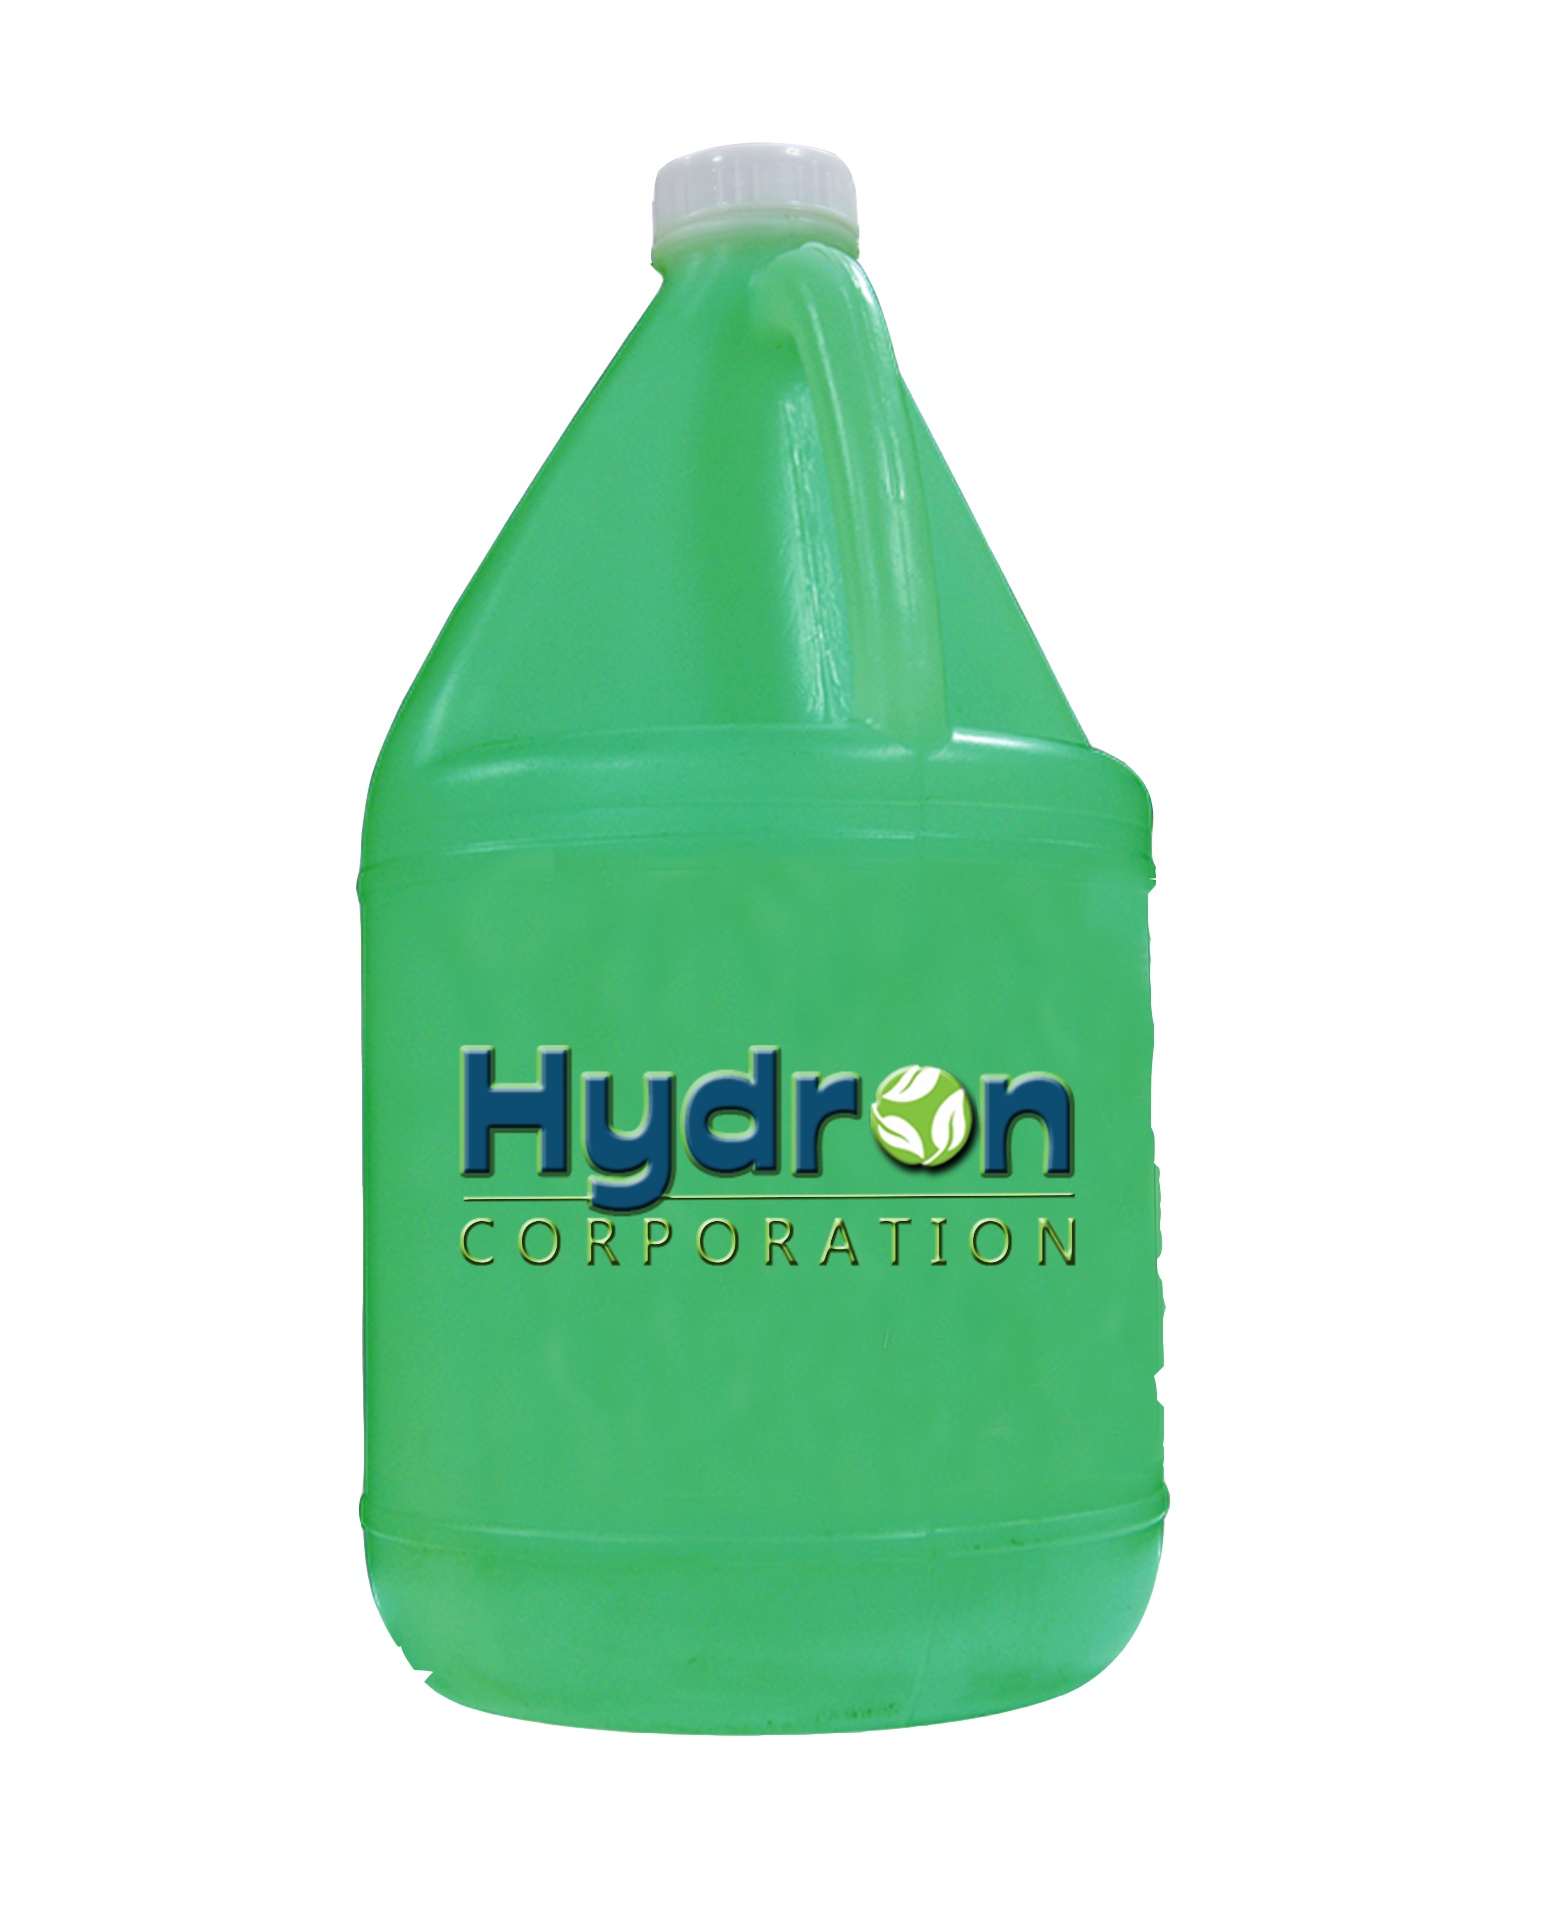 Basic Cleaning Chemicals Hydron Corporation